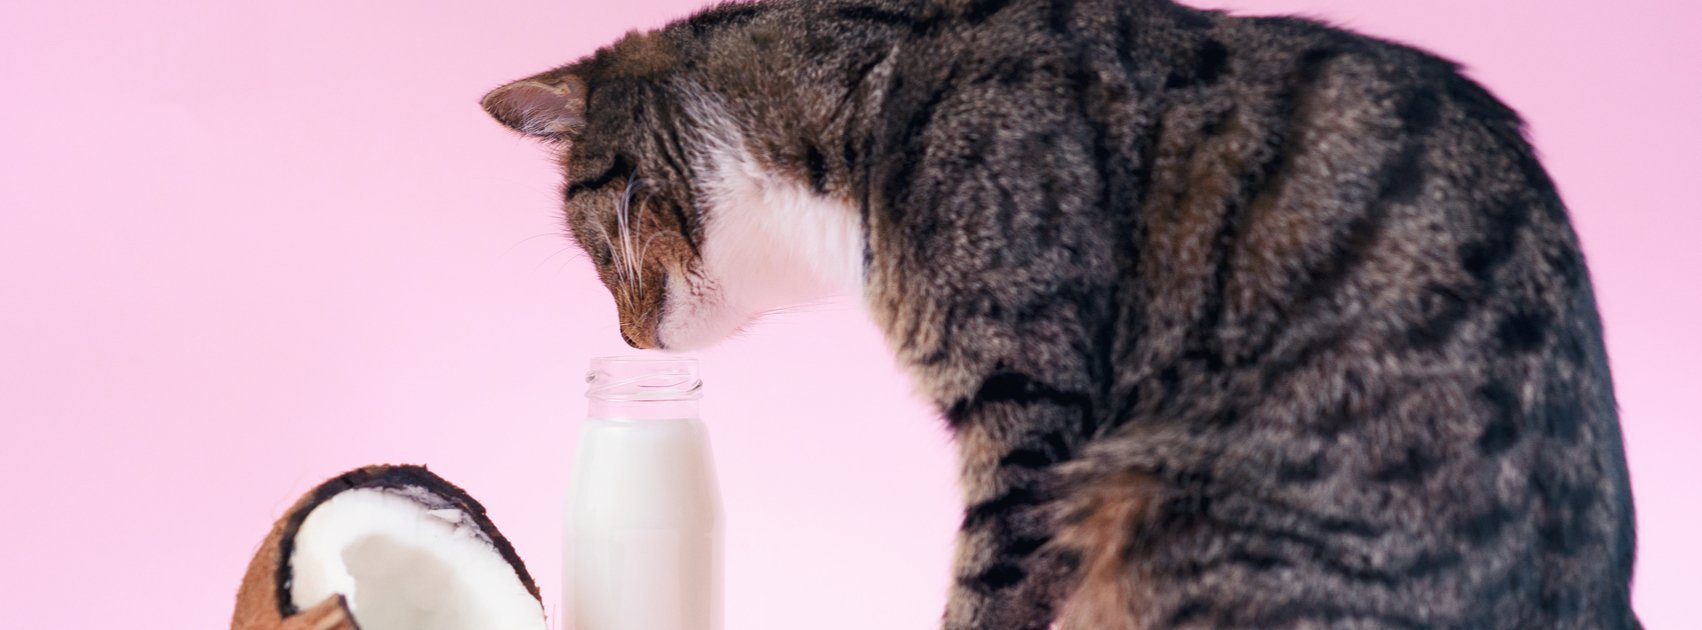 Is Coconut Oil Safe For My Pet?